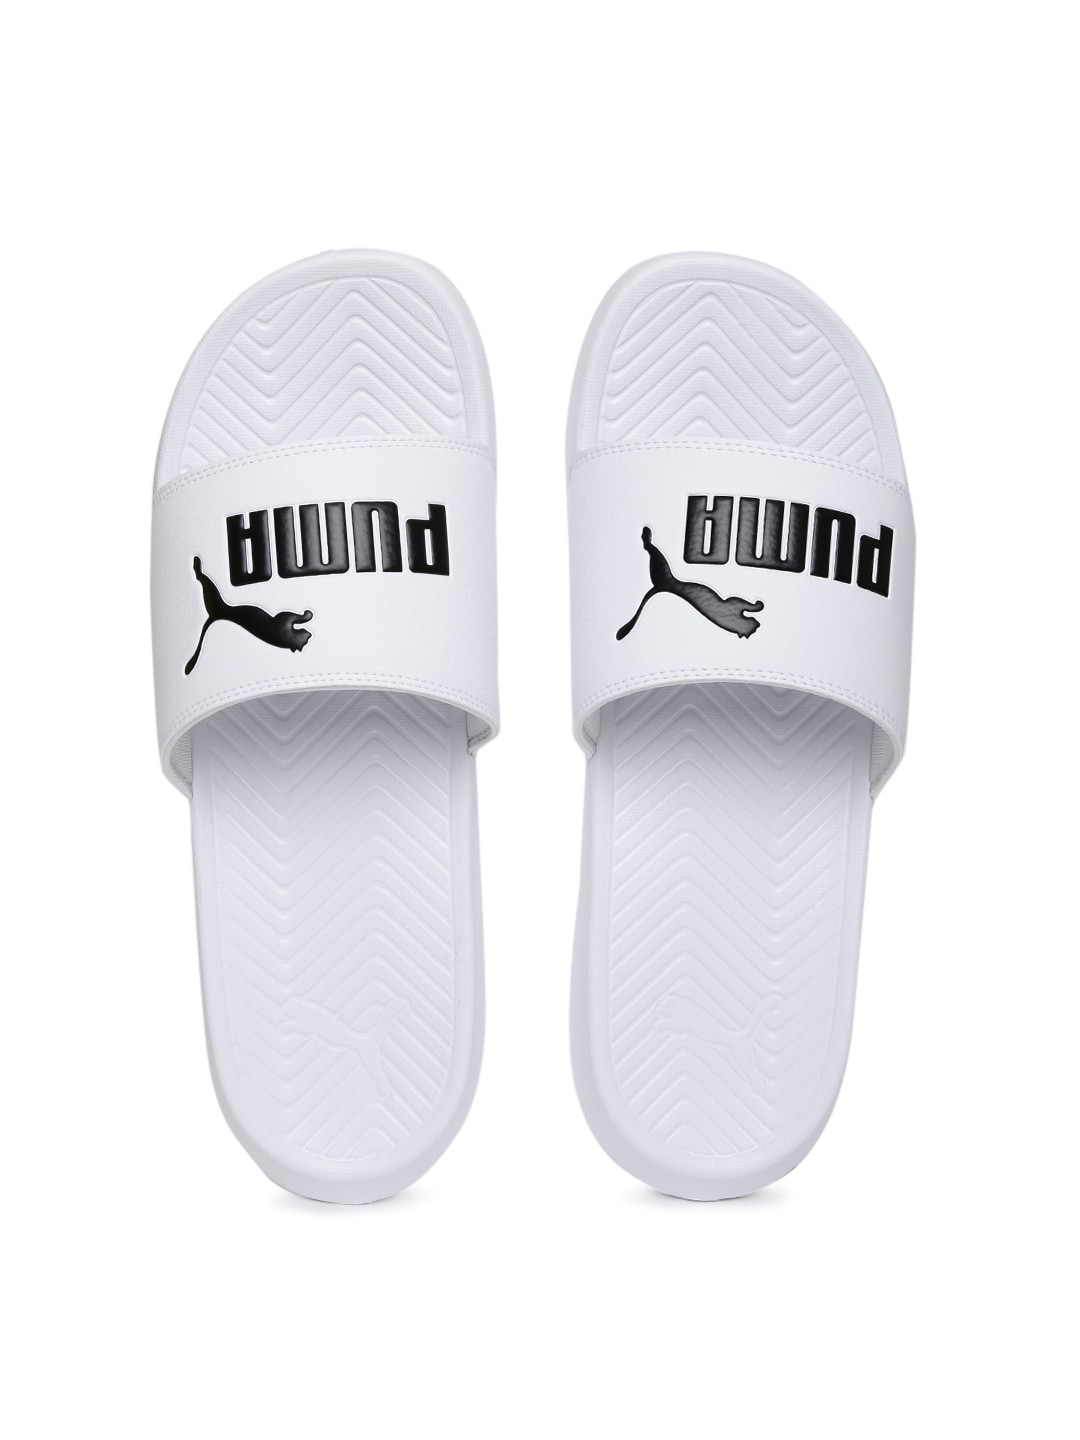 Puma Slippers - Buy Puma Slippers Online at Best Price  a23a923d8